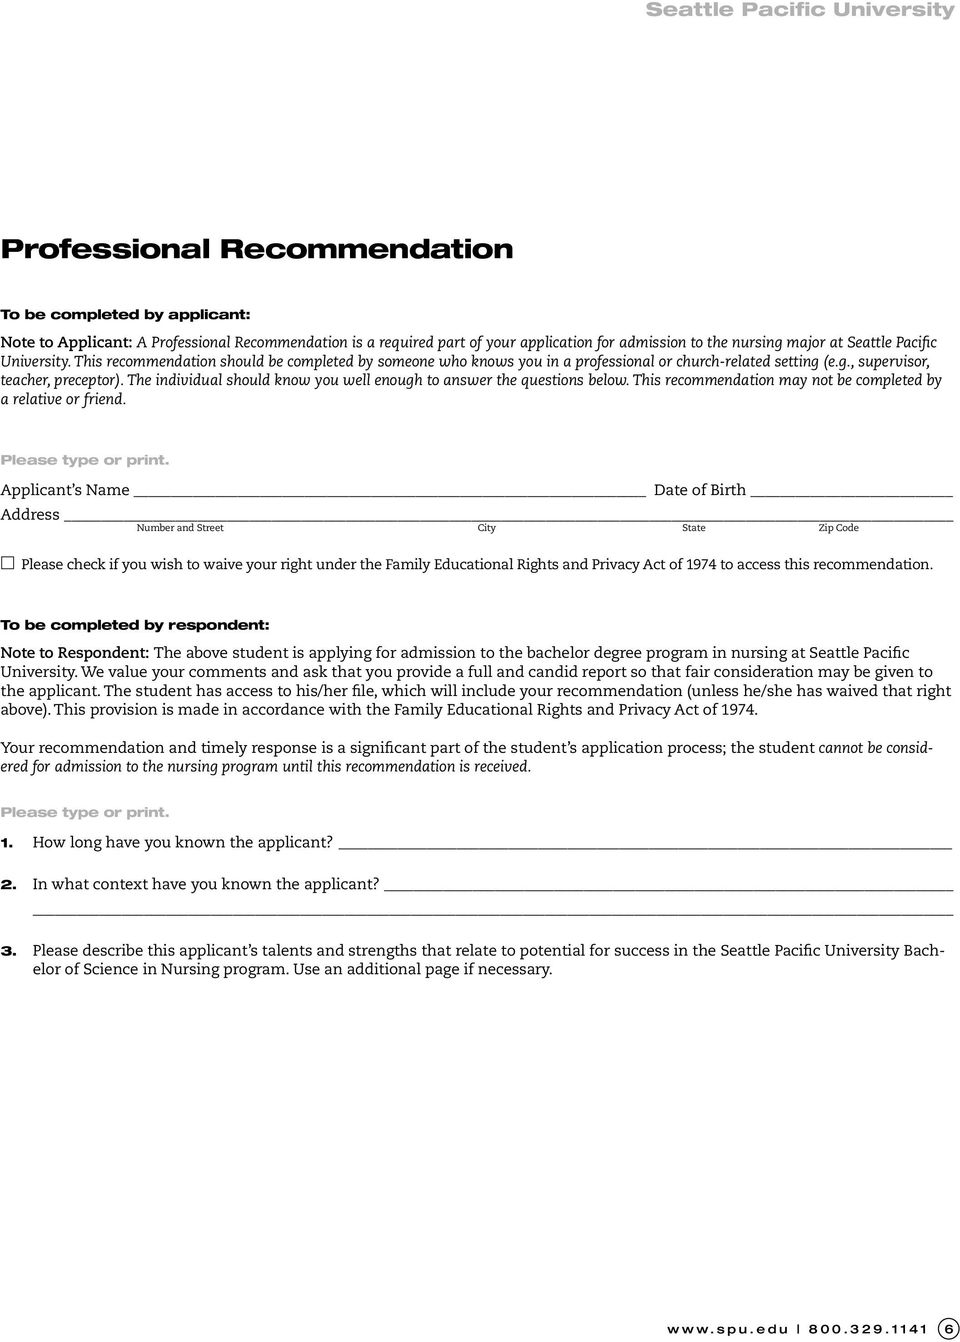 The individual should know you well enough to answer the questions below. This recommendation may not be completed by a relative or friend. Please type or print.